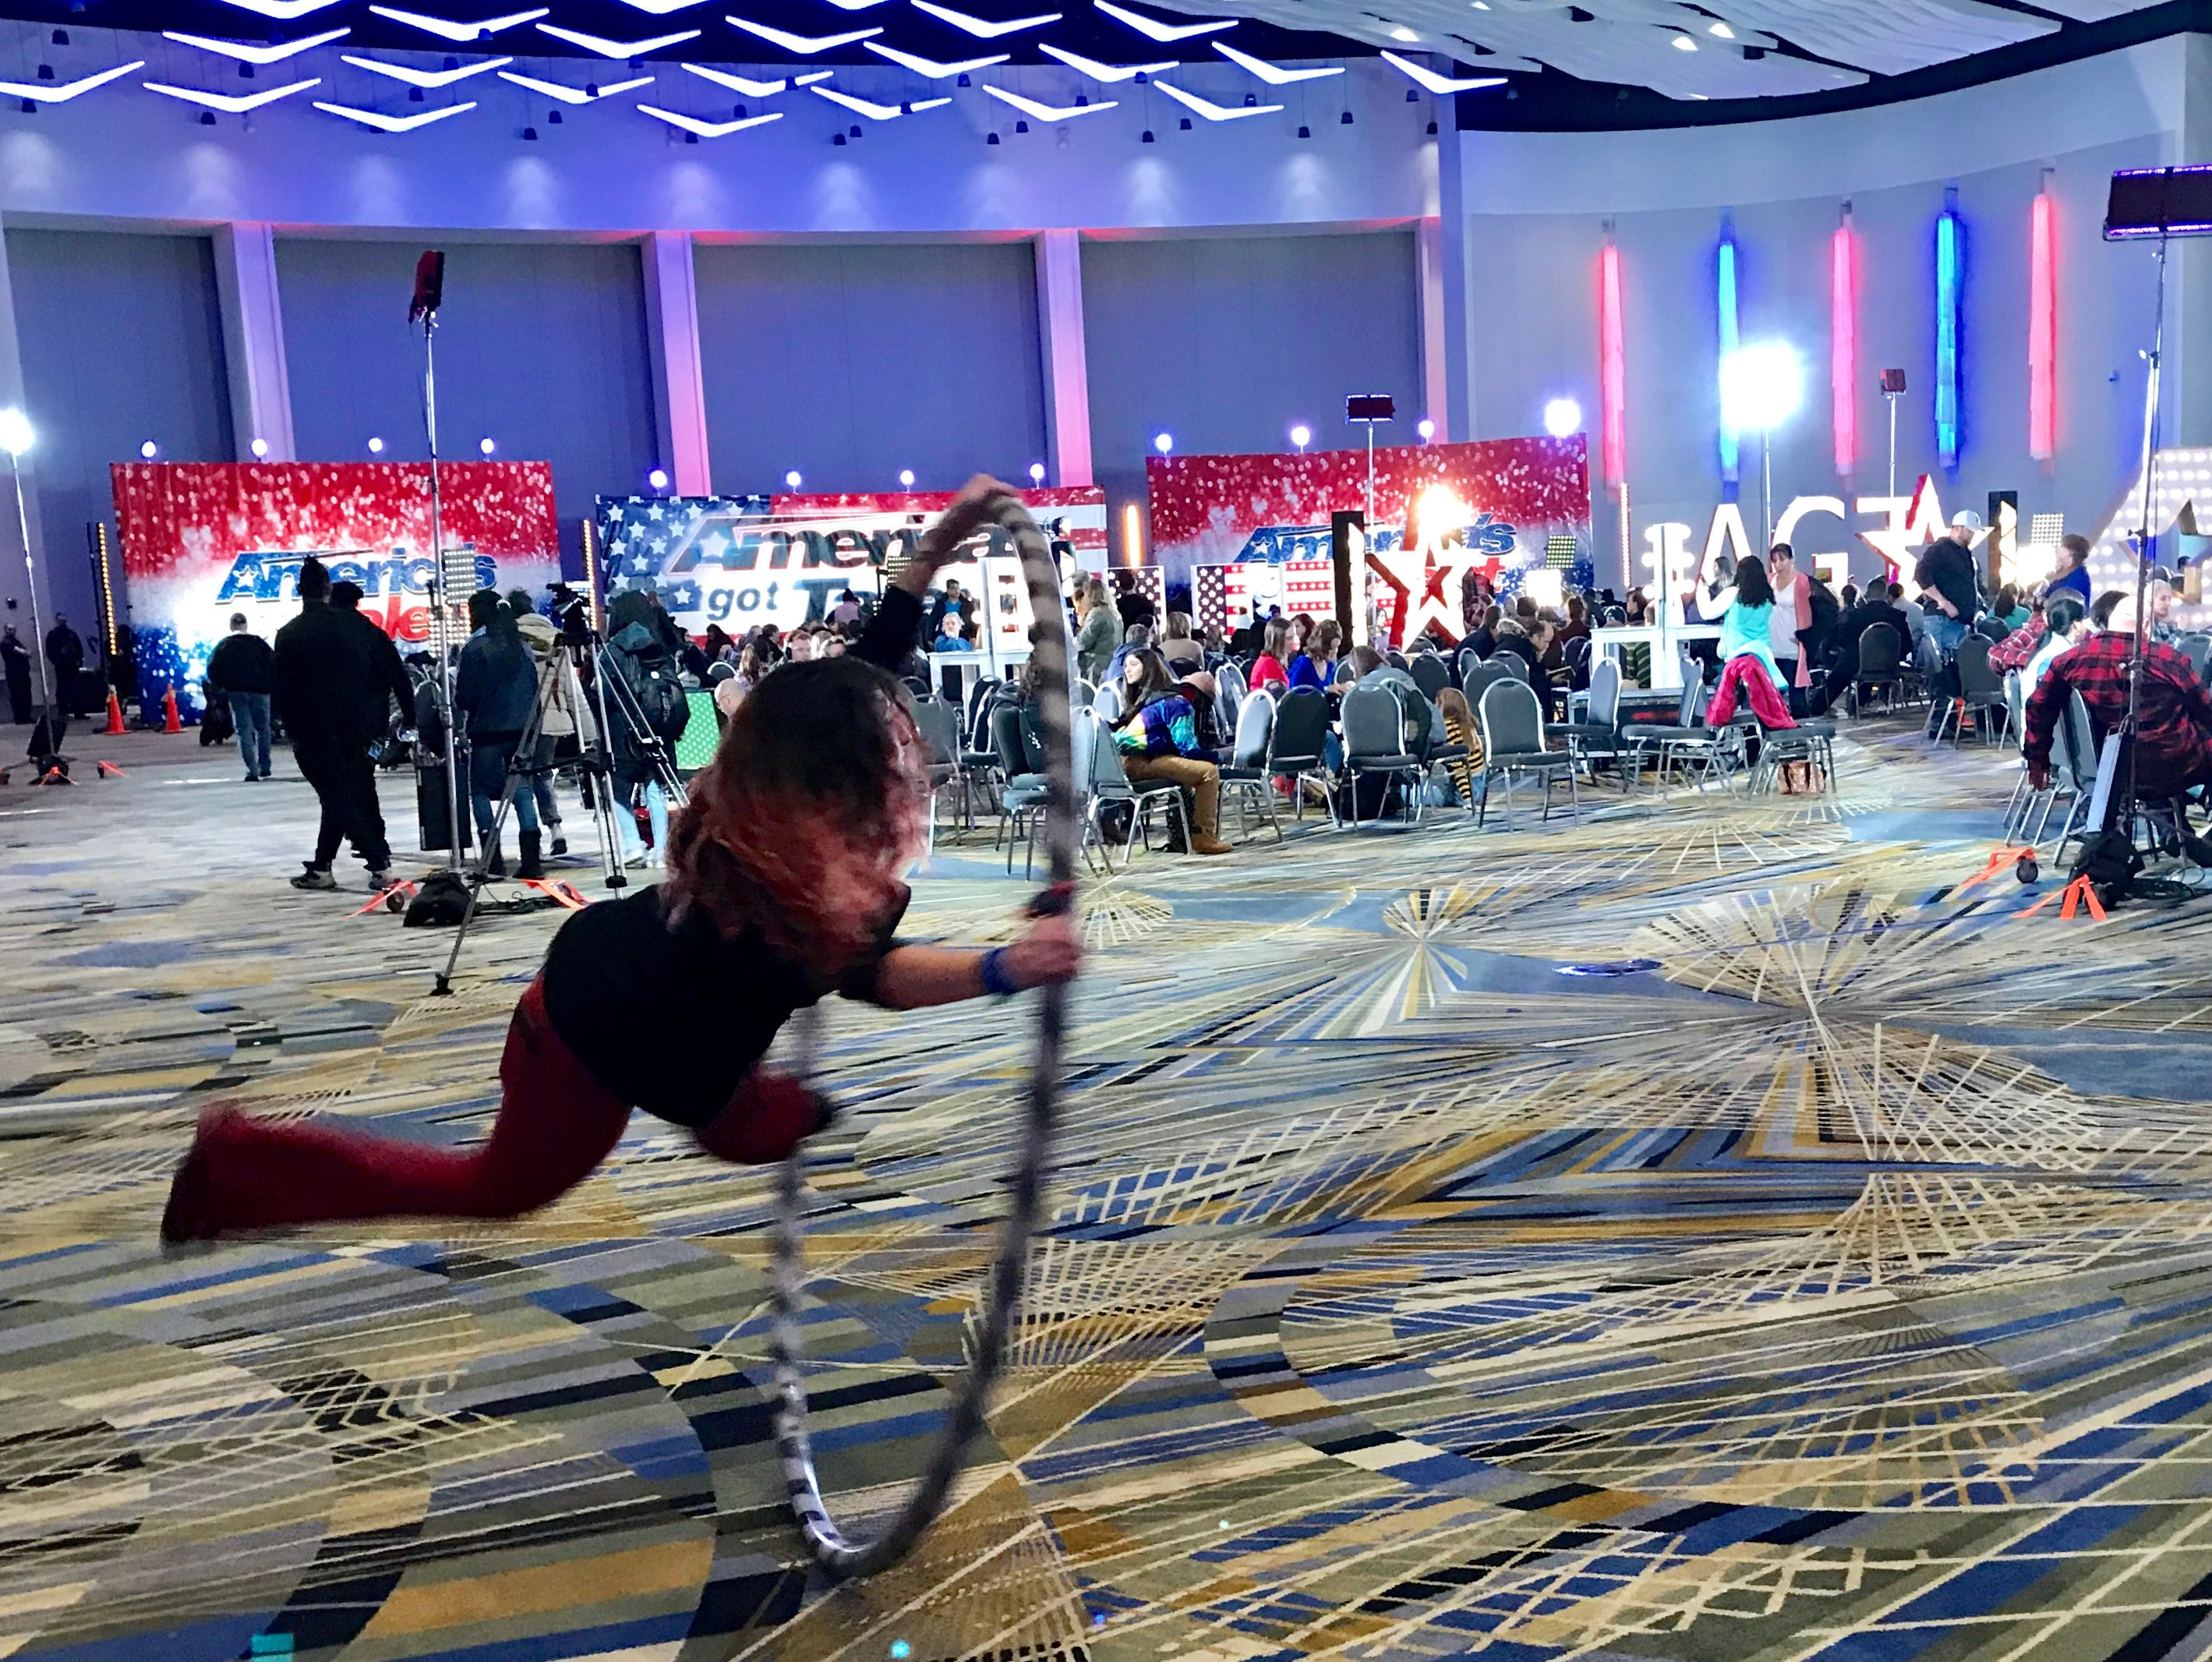 'America's Got Talent' searches Detroit for stars, finds thousands of hopefuls